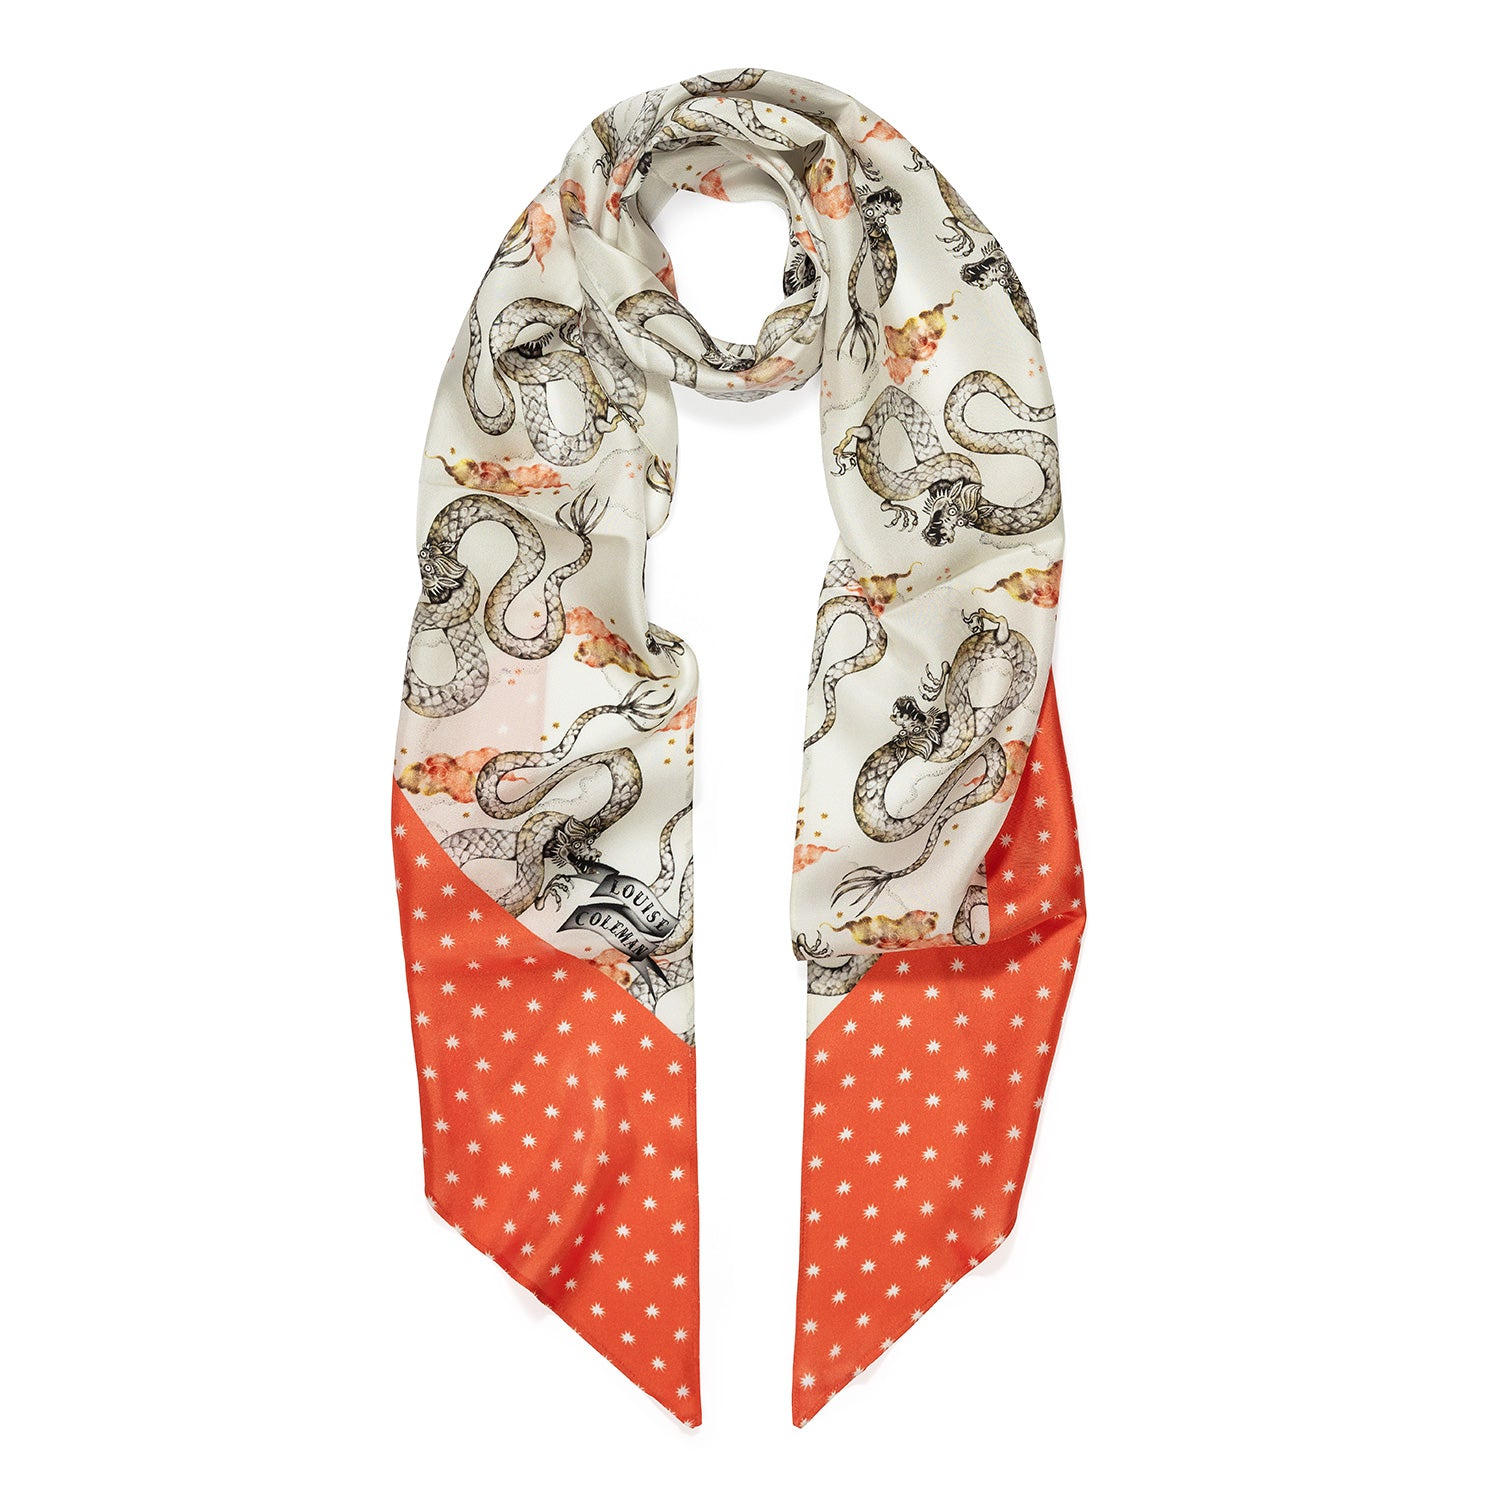 Magic Dragon print skinny silk scarf in cream colourway with coral starry border by Louise Coleman